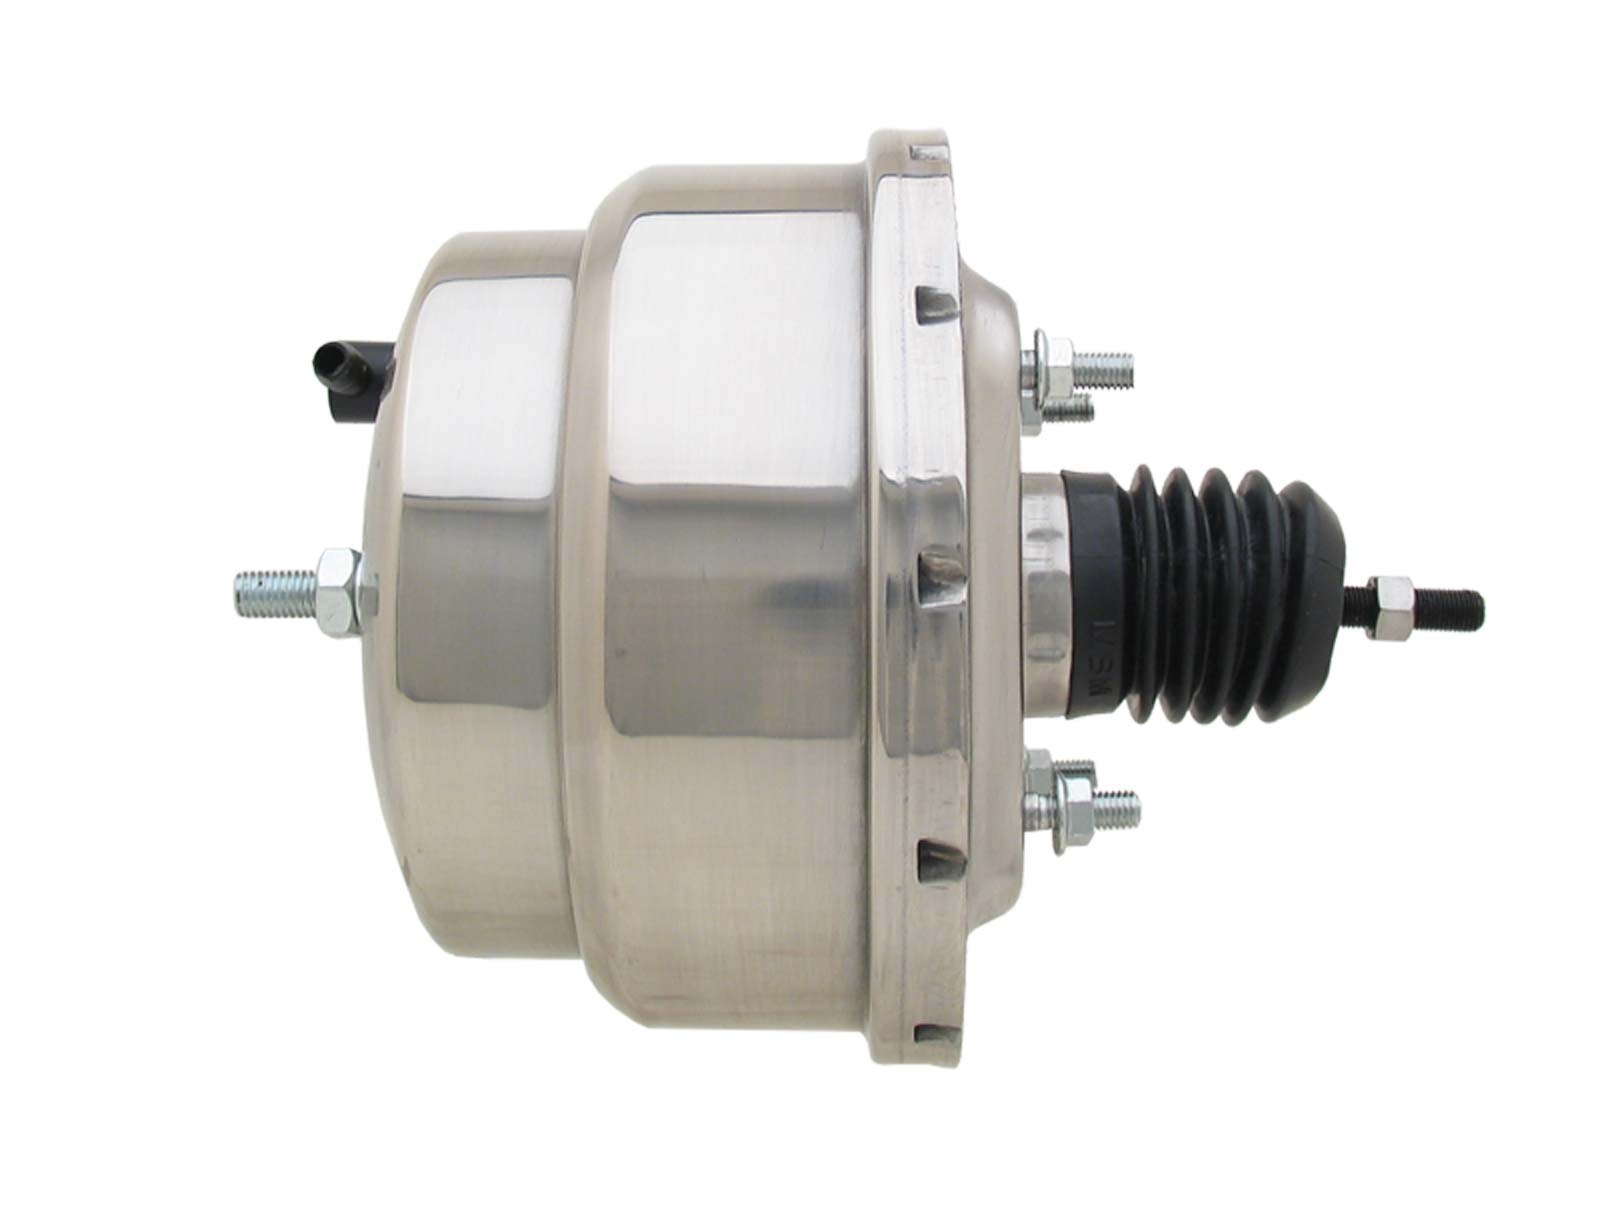 Universal 8 Dual Power Brake Booster Polished Stainless Steel